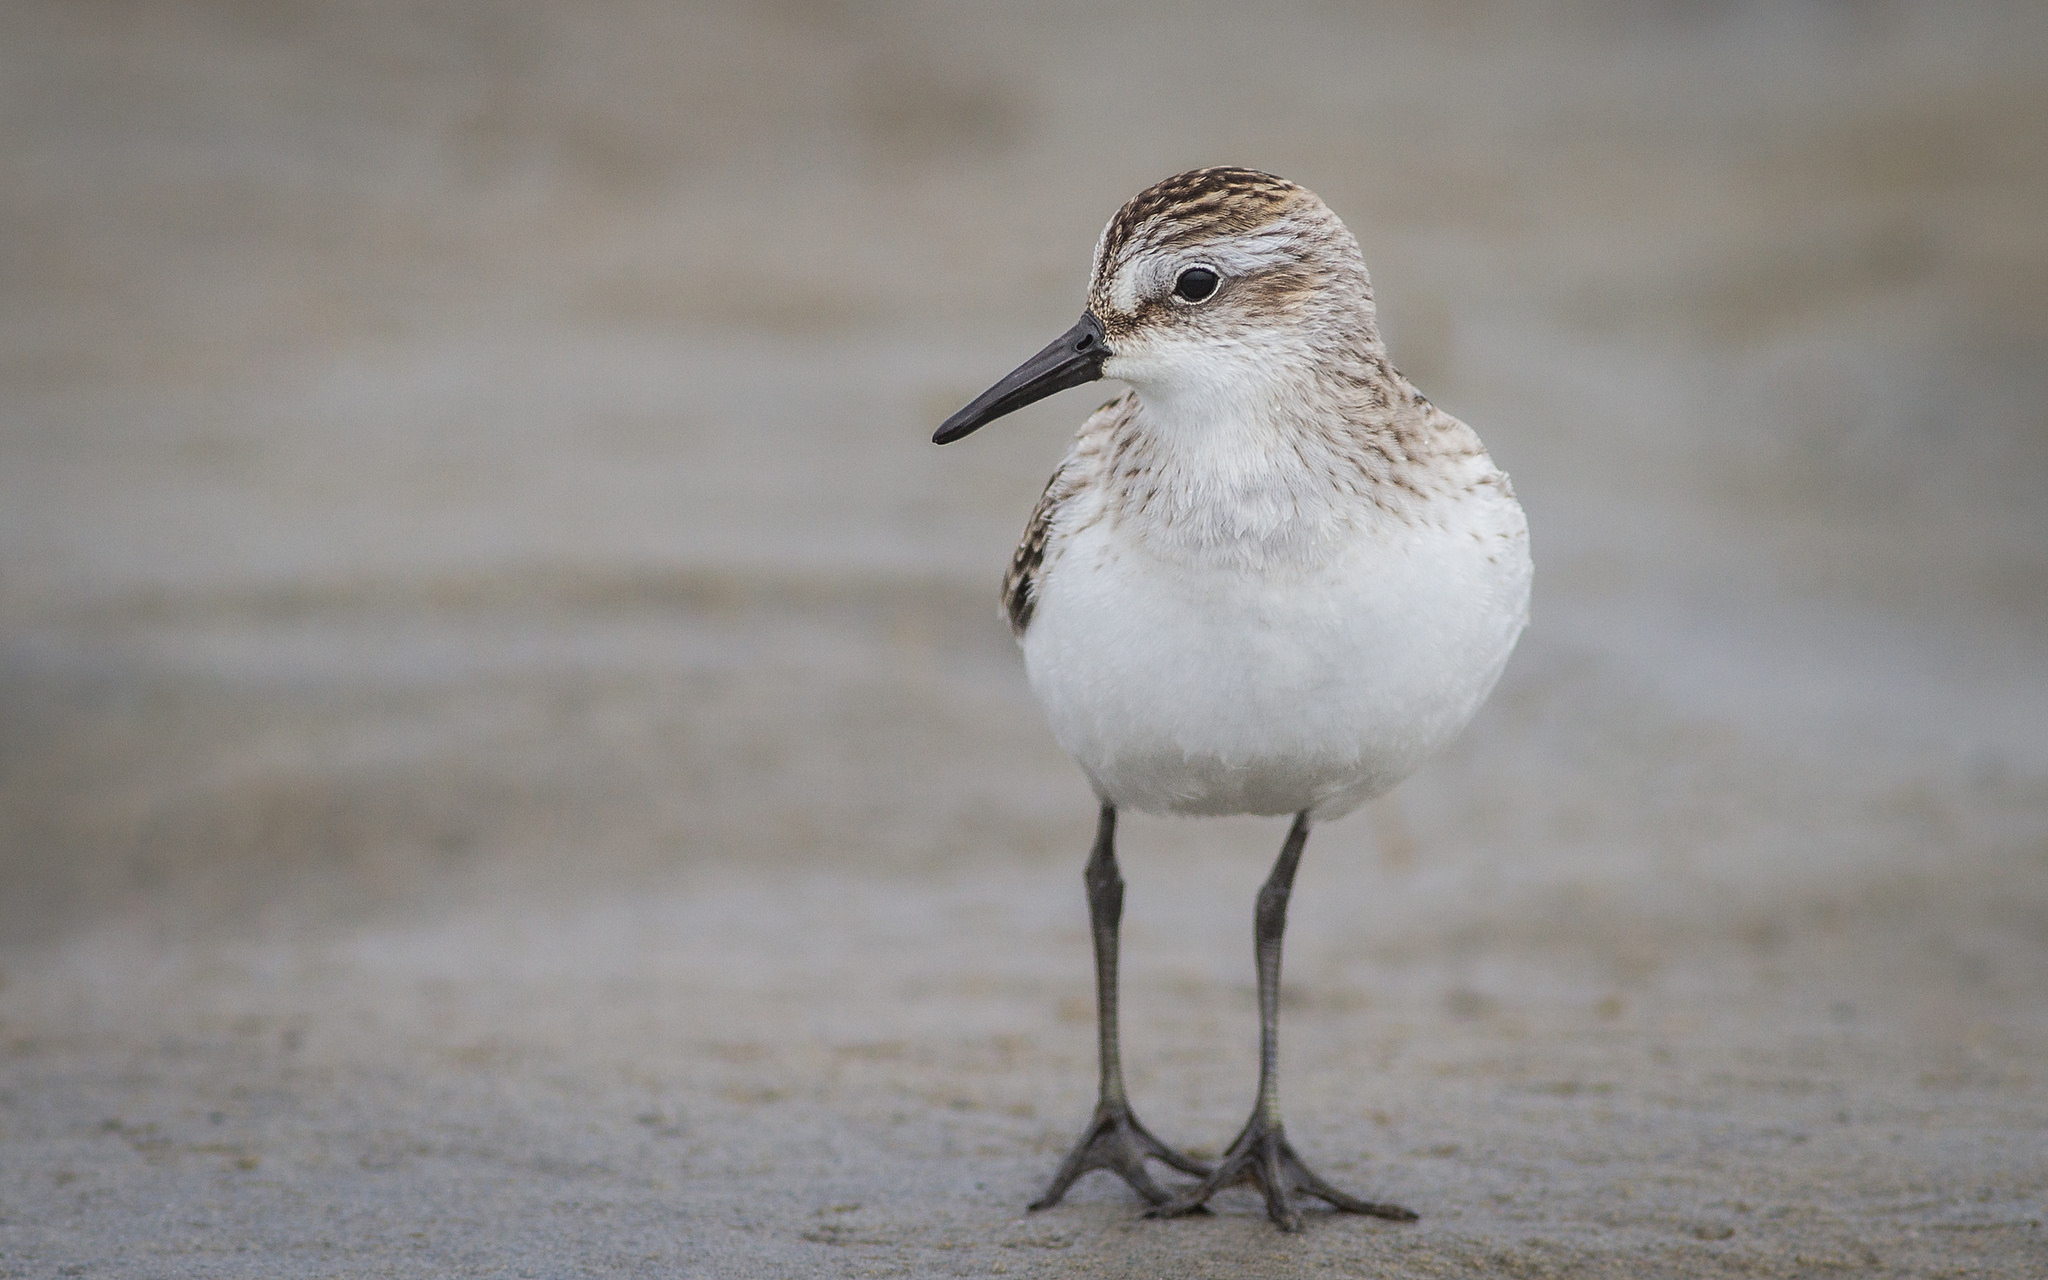 Semipalmated Sandpiper by Fyn Kynd